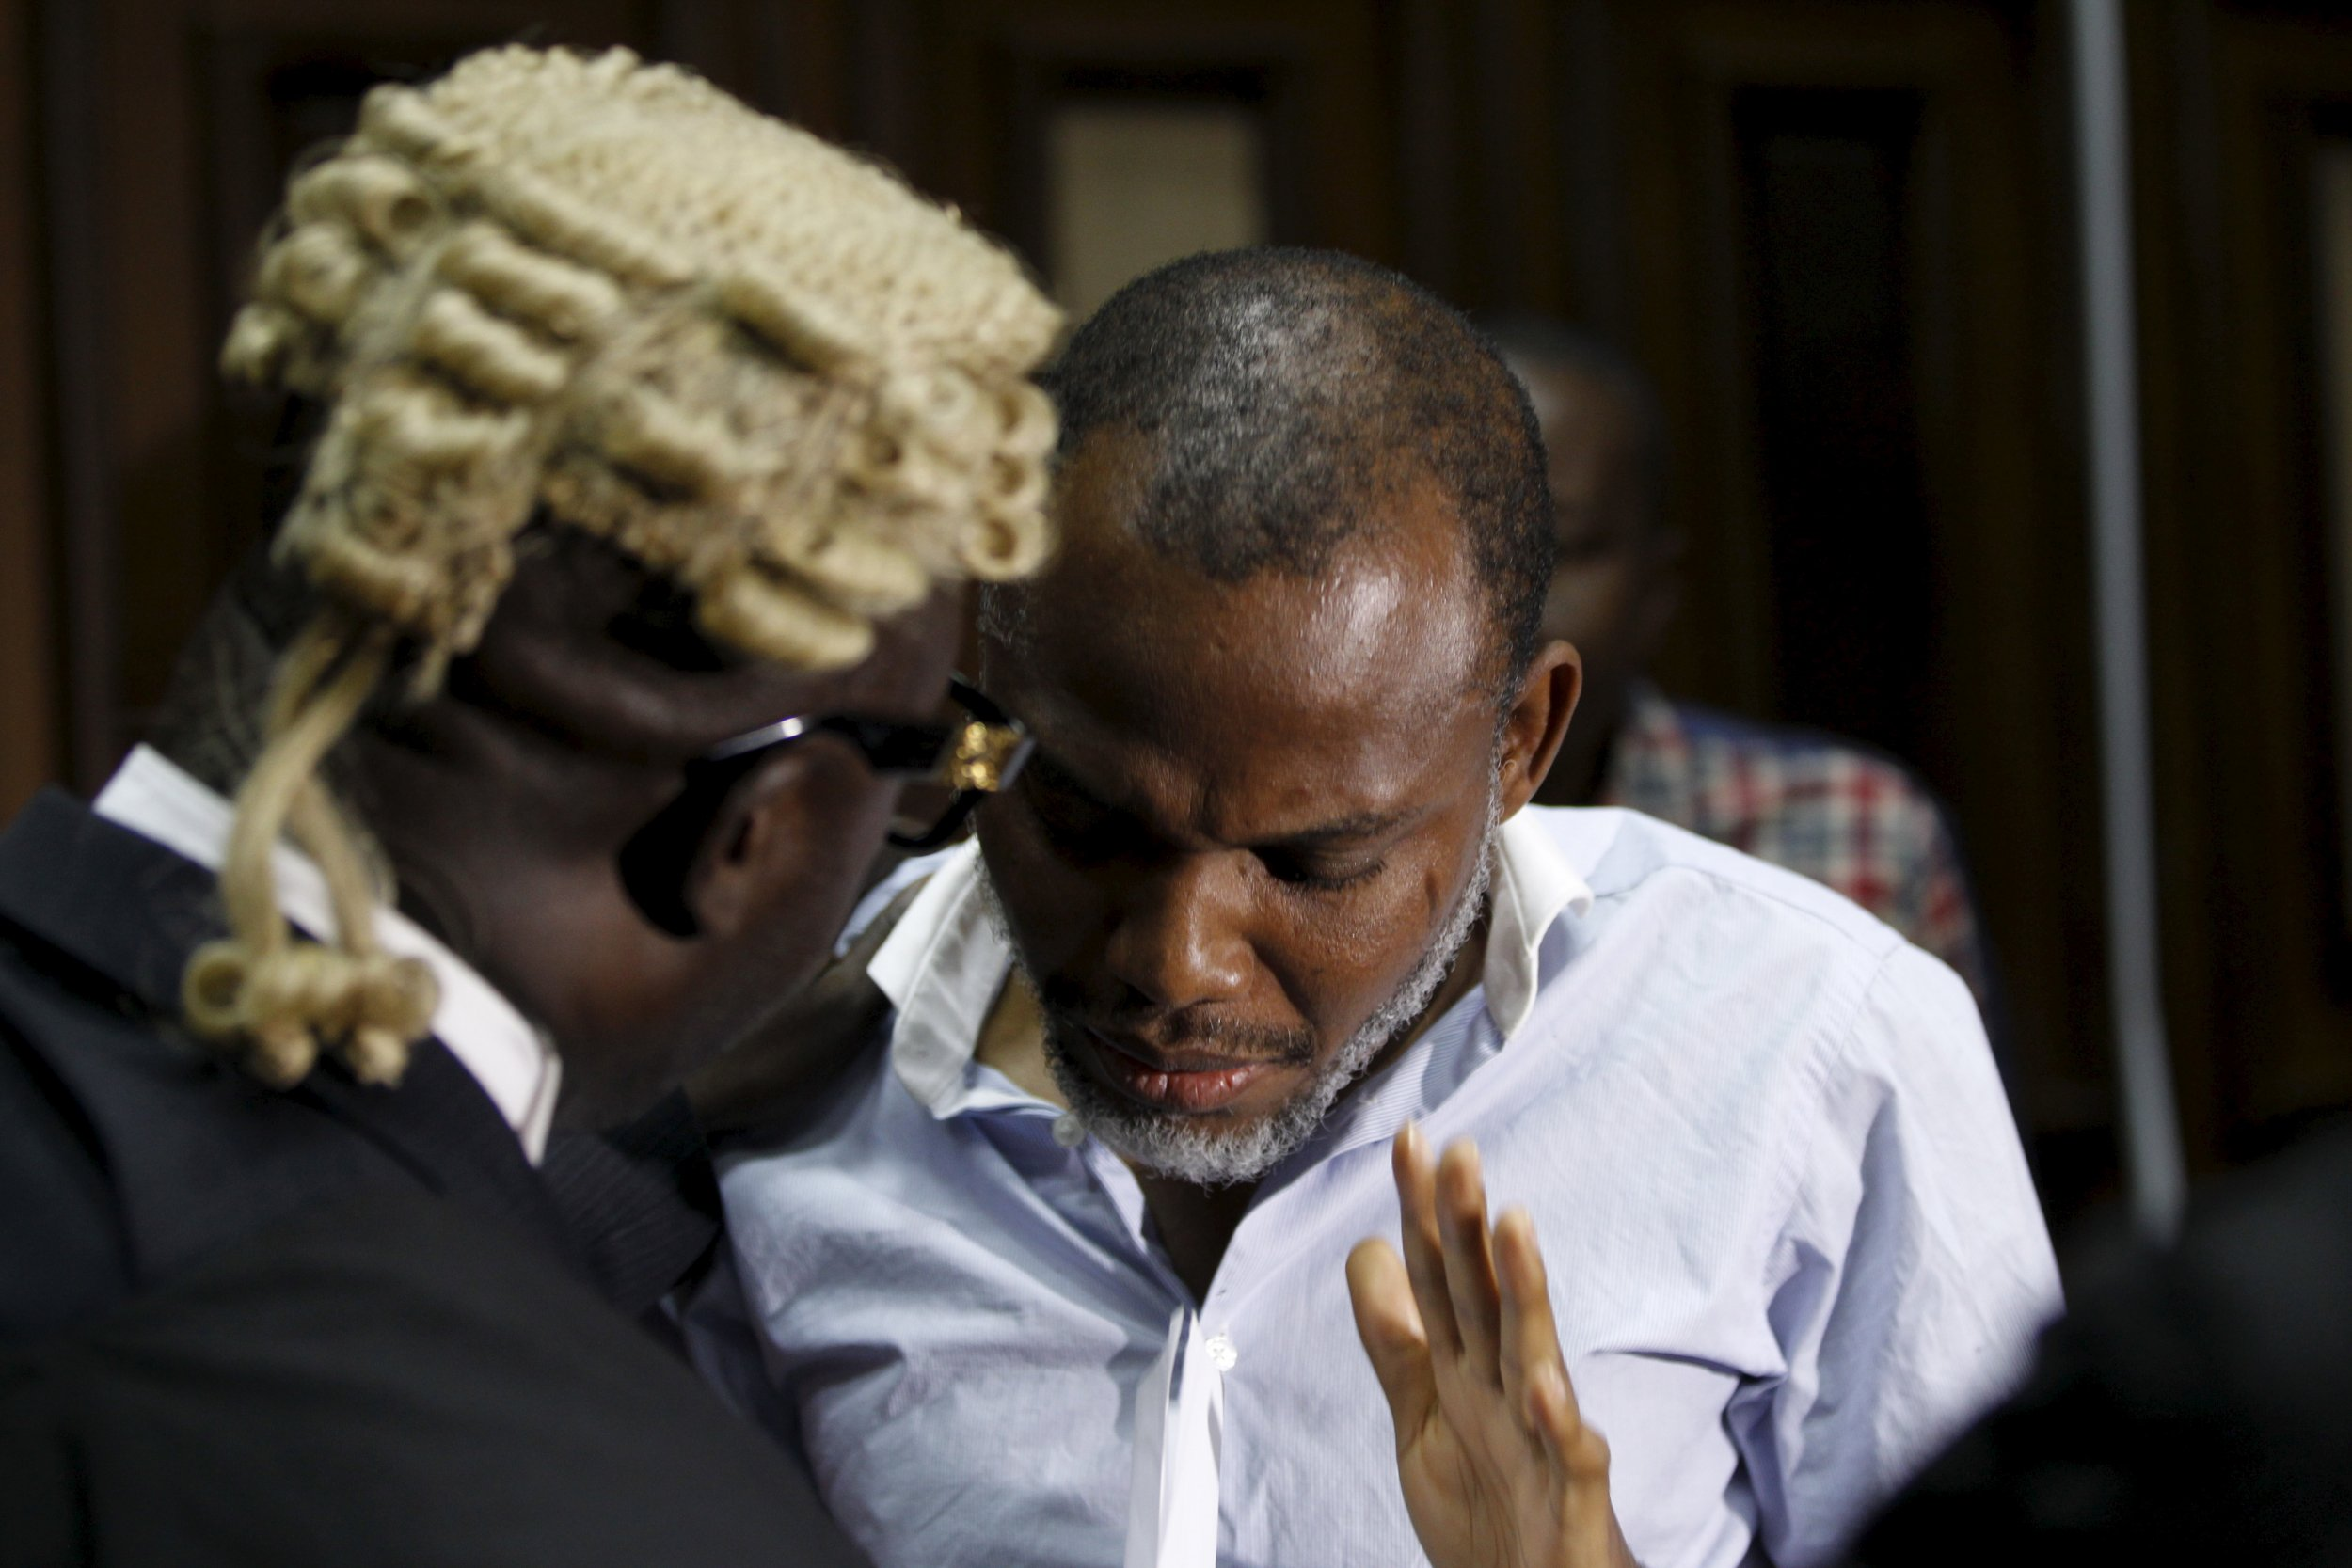 Pro-Biafra activist Nnamdi Kanu with his lawyer.